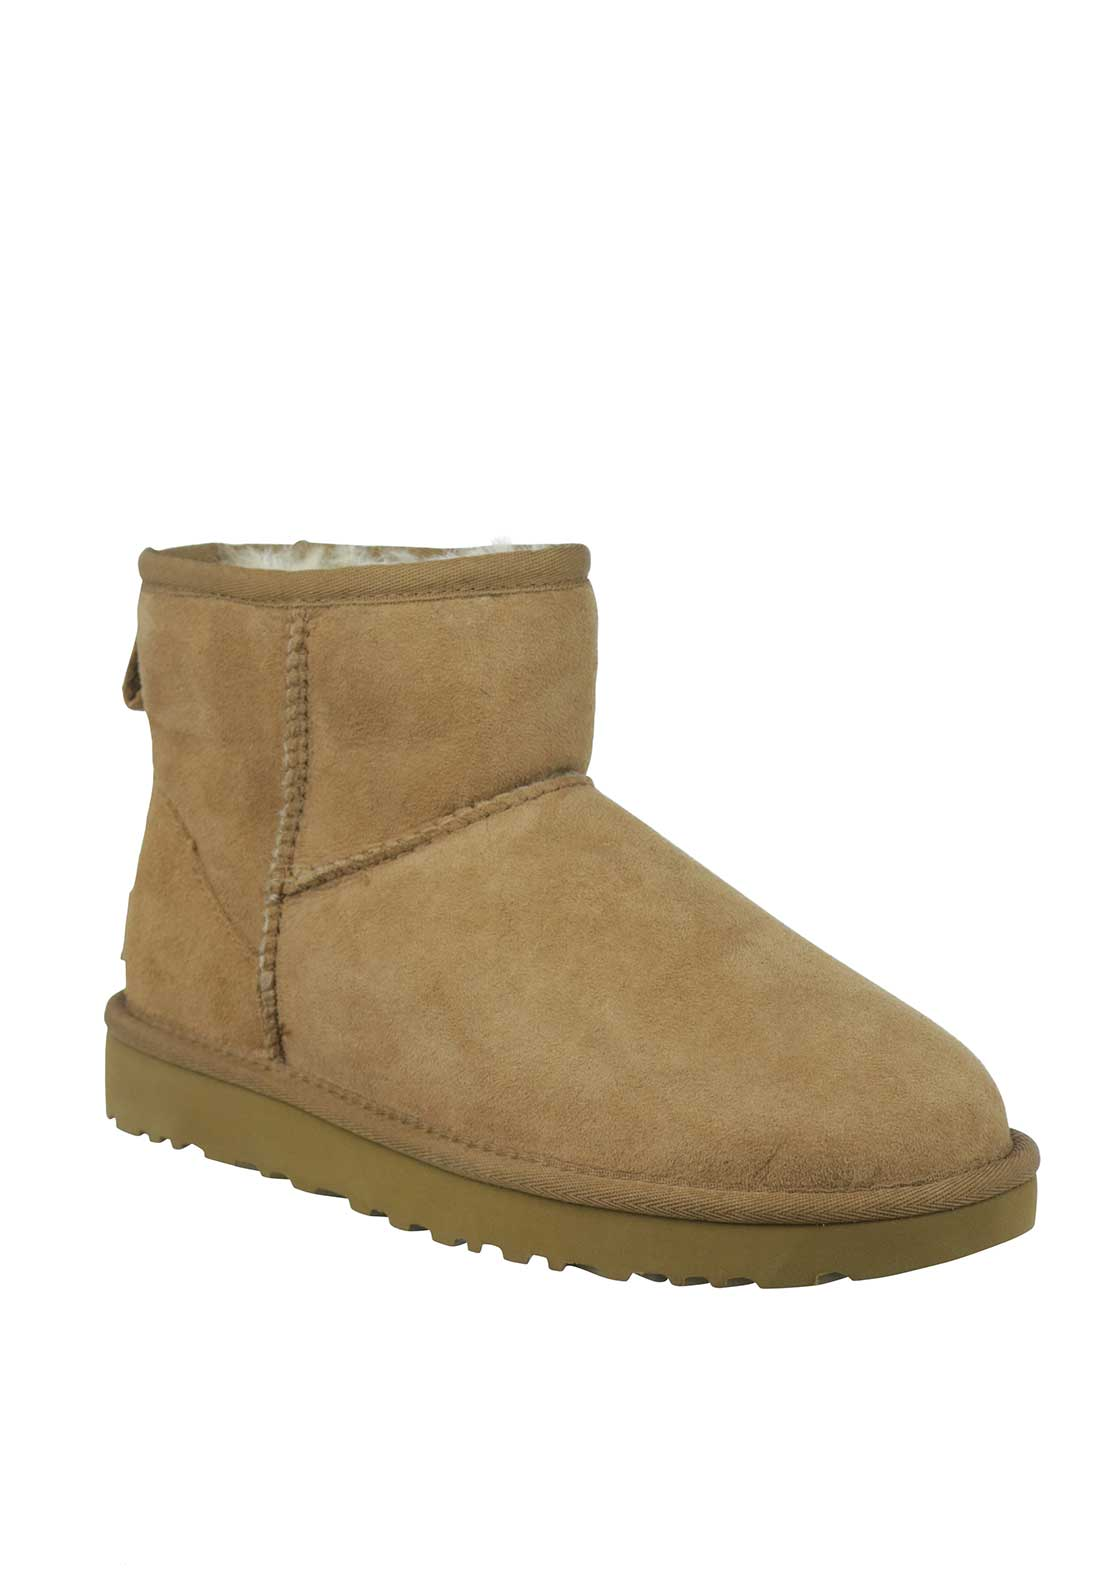 UGG Australia Womens Suede Ankle Boot, Chestnut